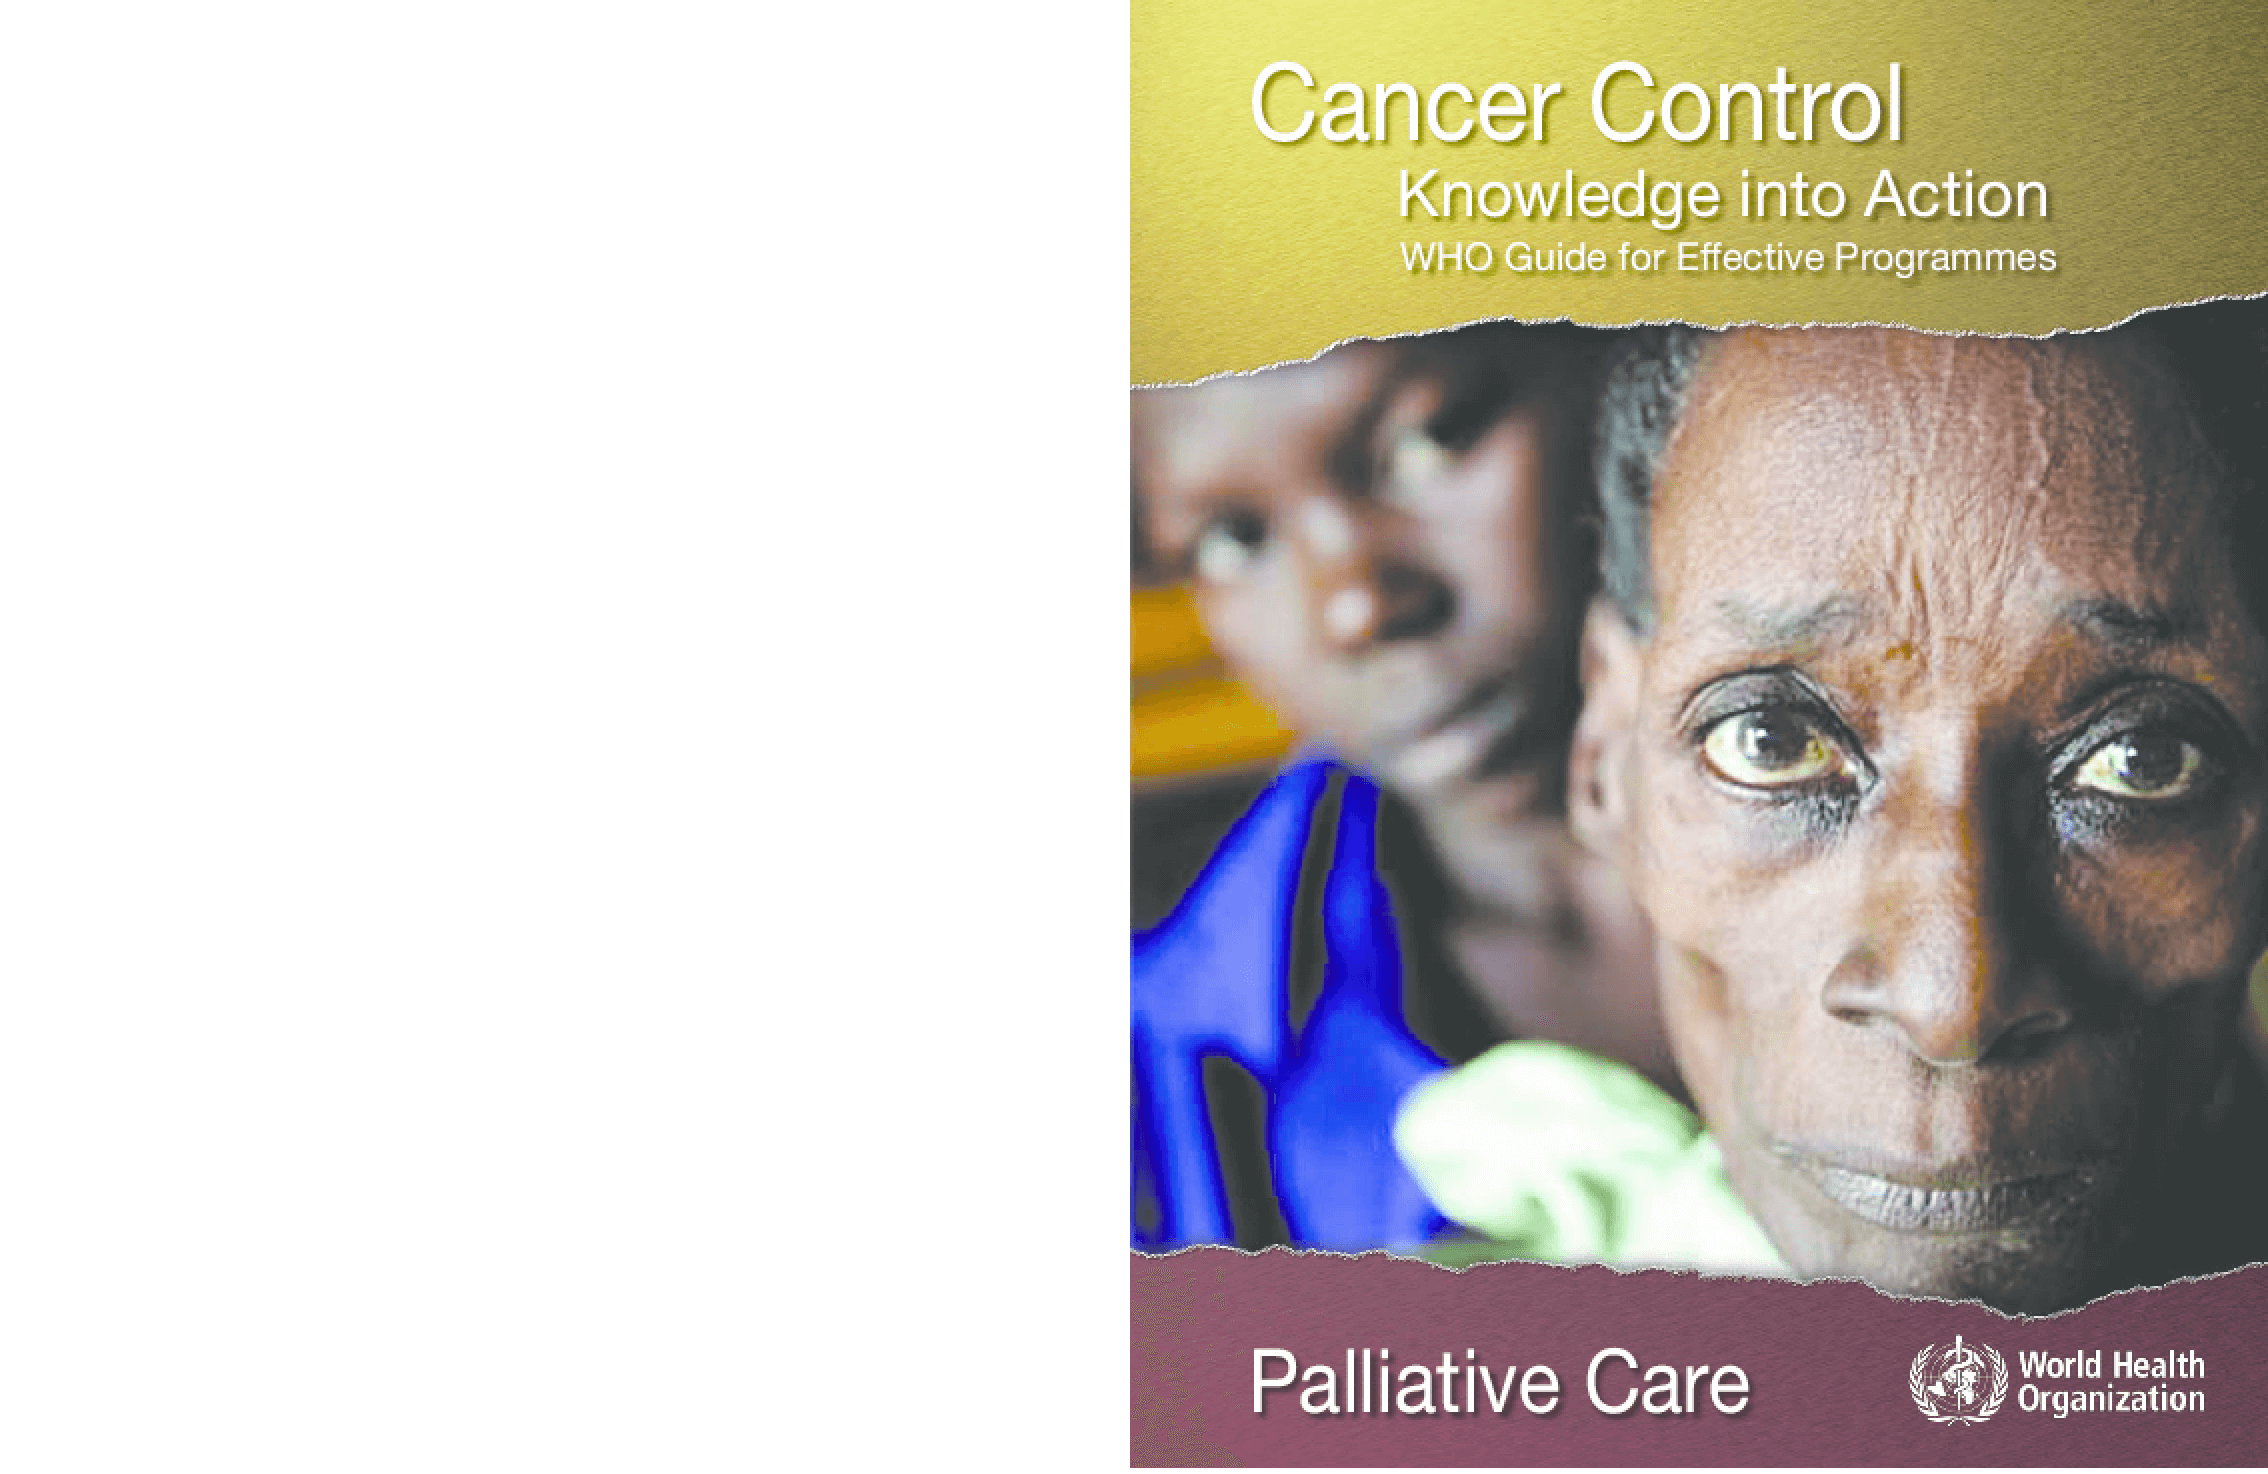 Cancer Control: Knowledge into Action, Palliative Care